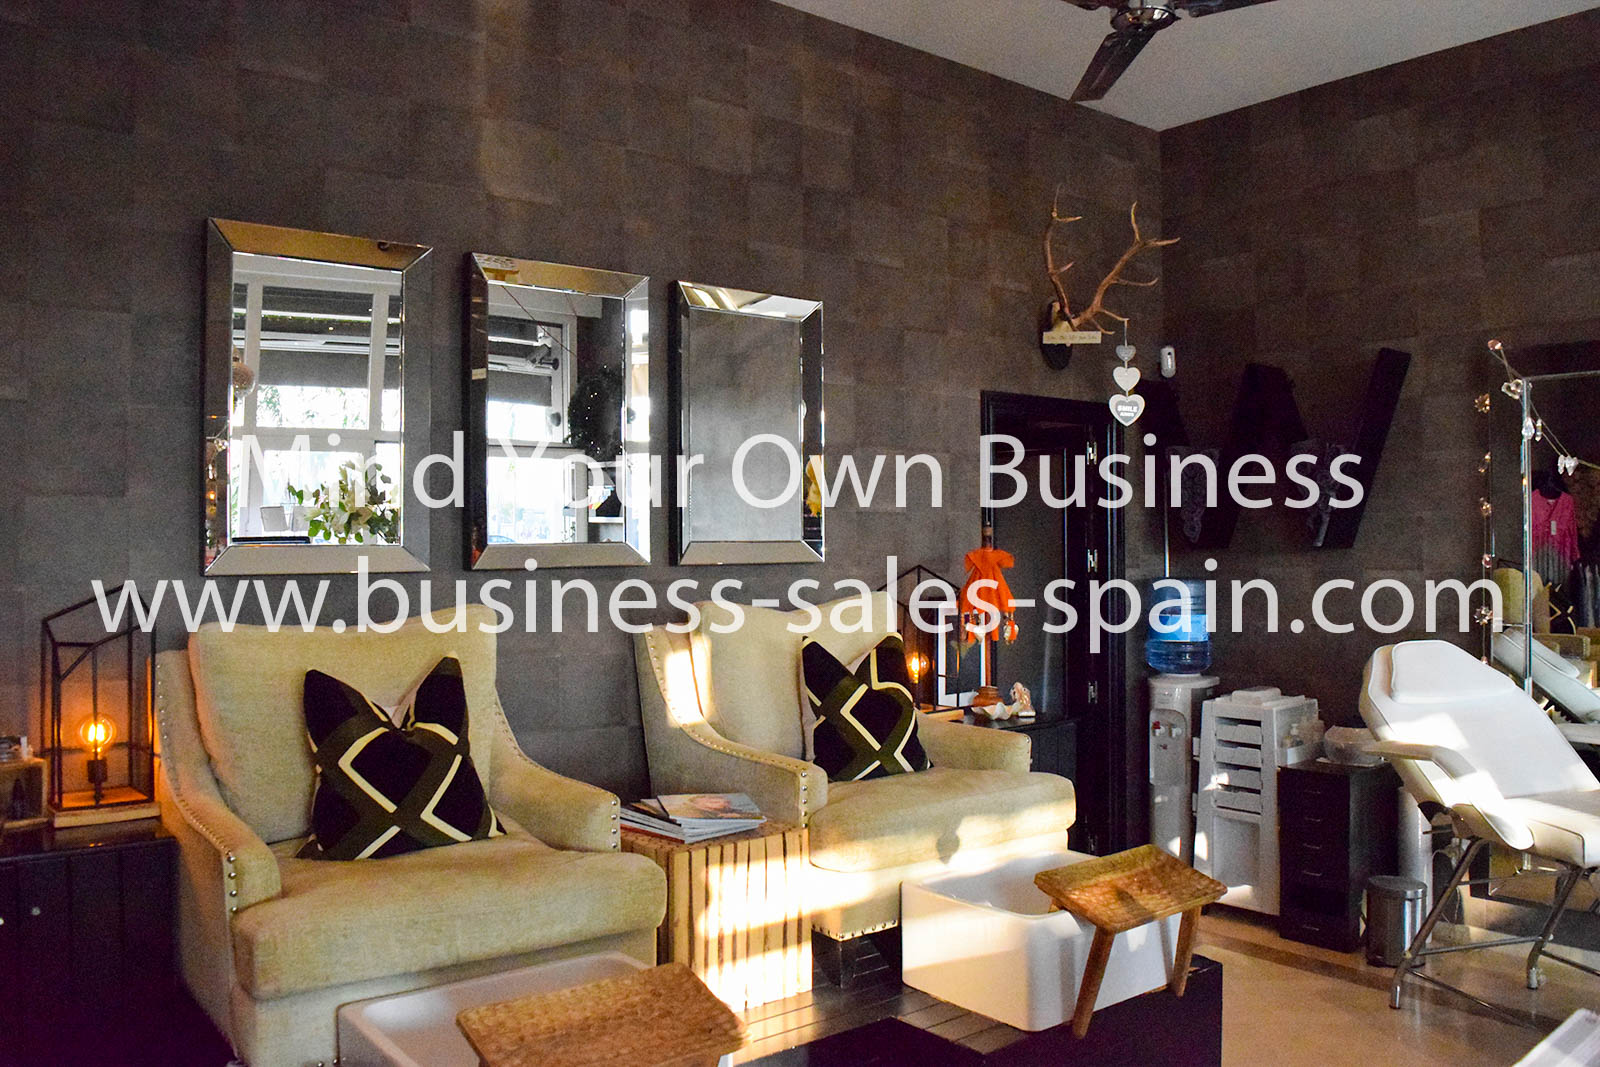 Extremely busy and Profitable Beauty Salon Close to Marbella